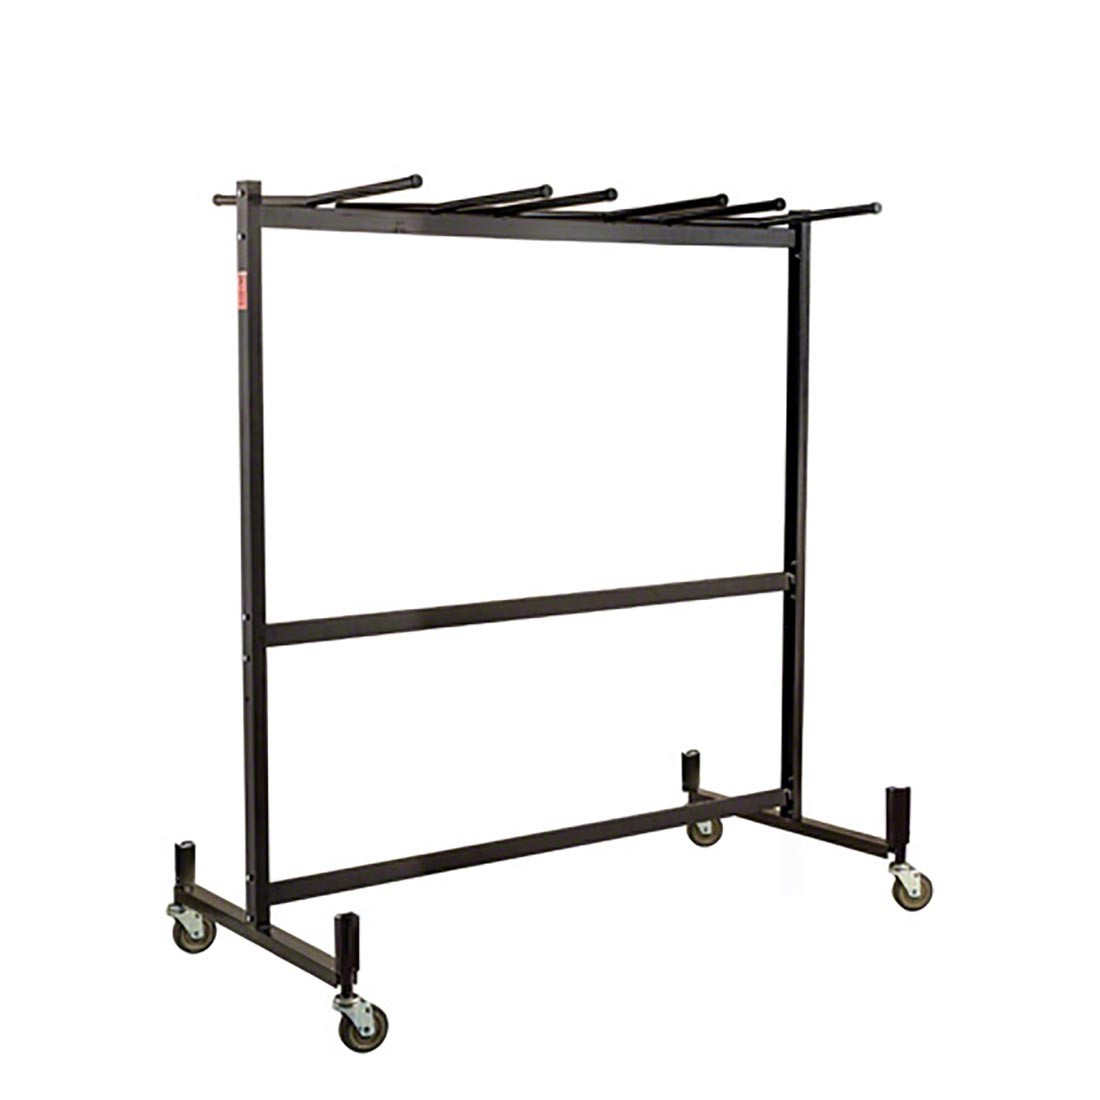 national public seating 42 8 combination folding chair table storage truck nps - National Public Seating